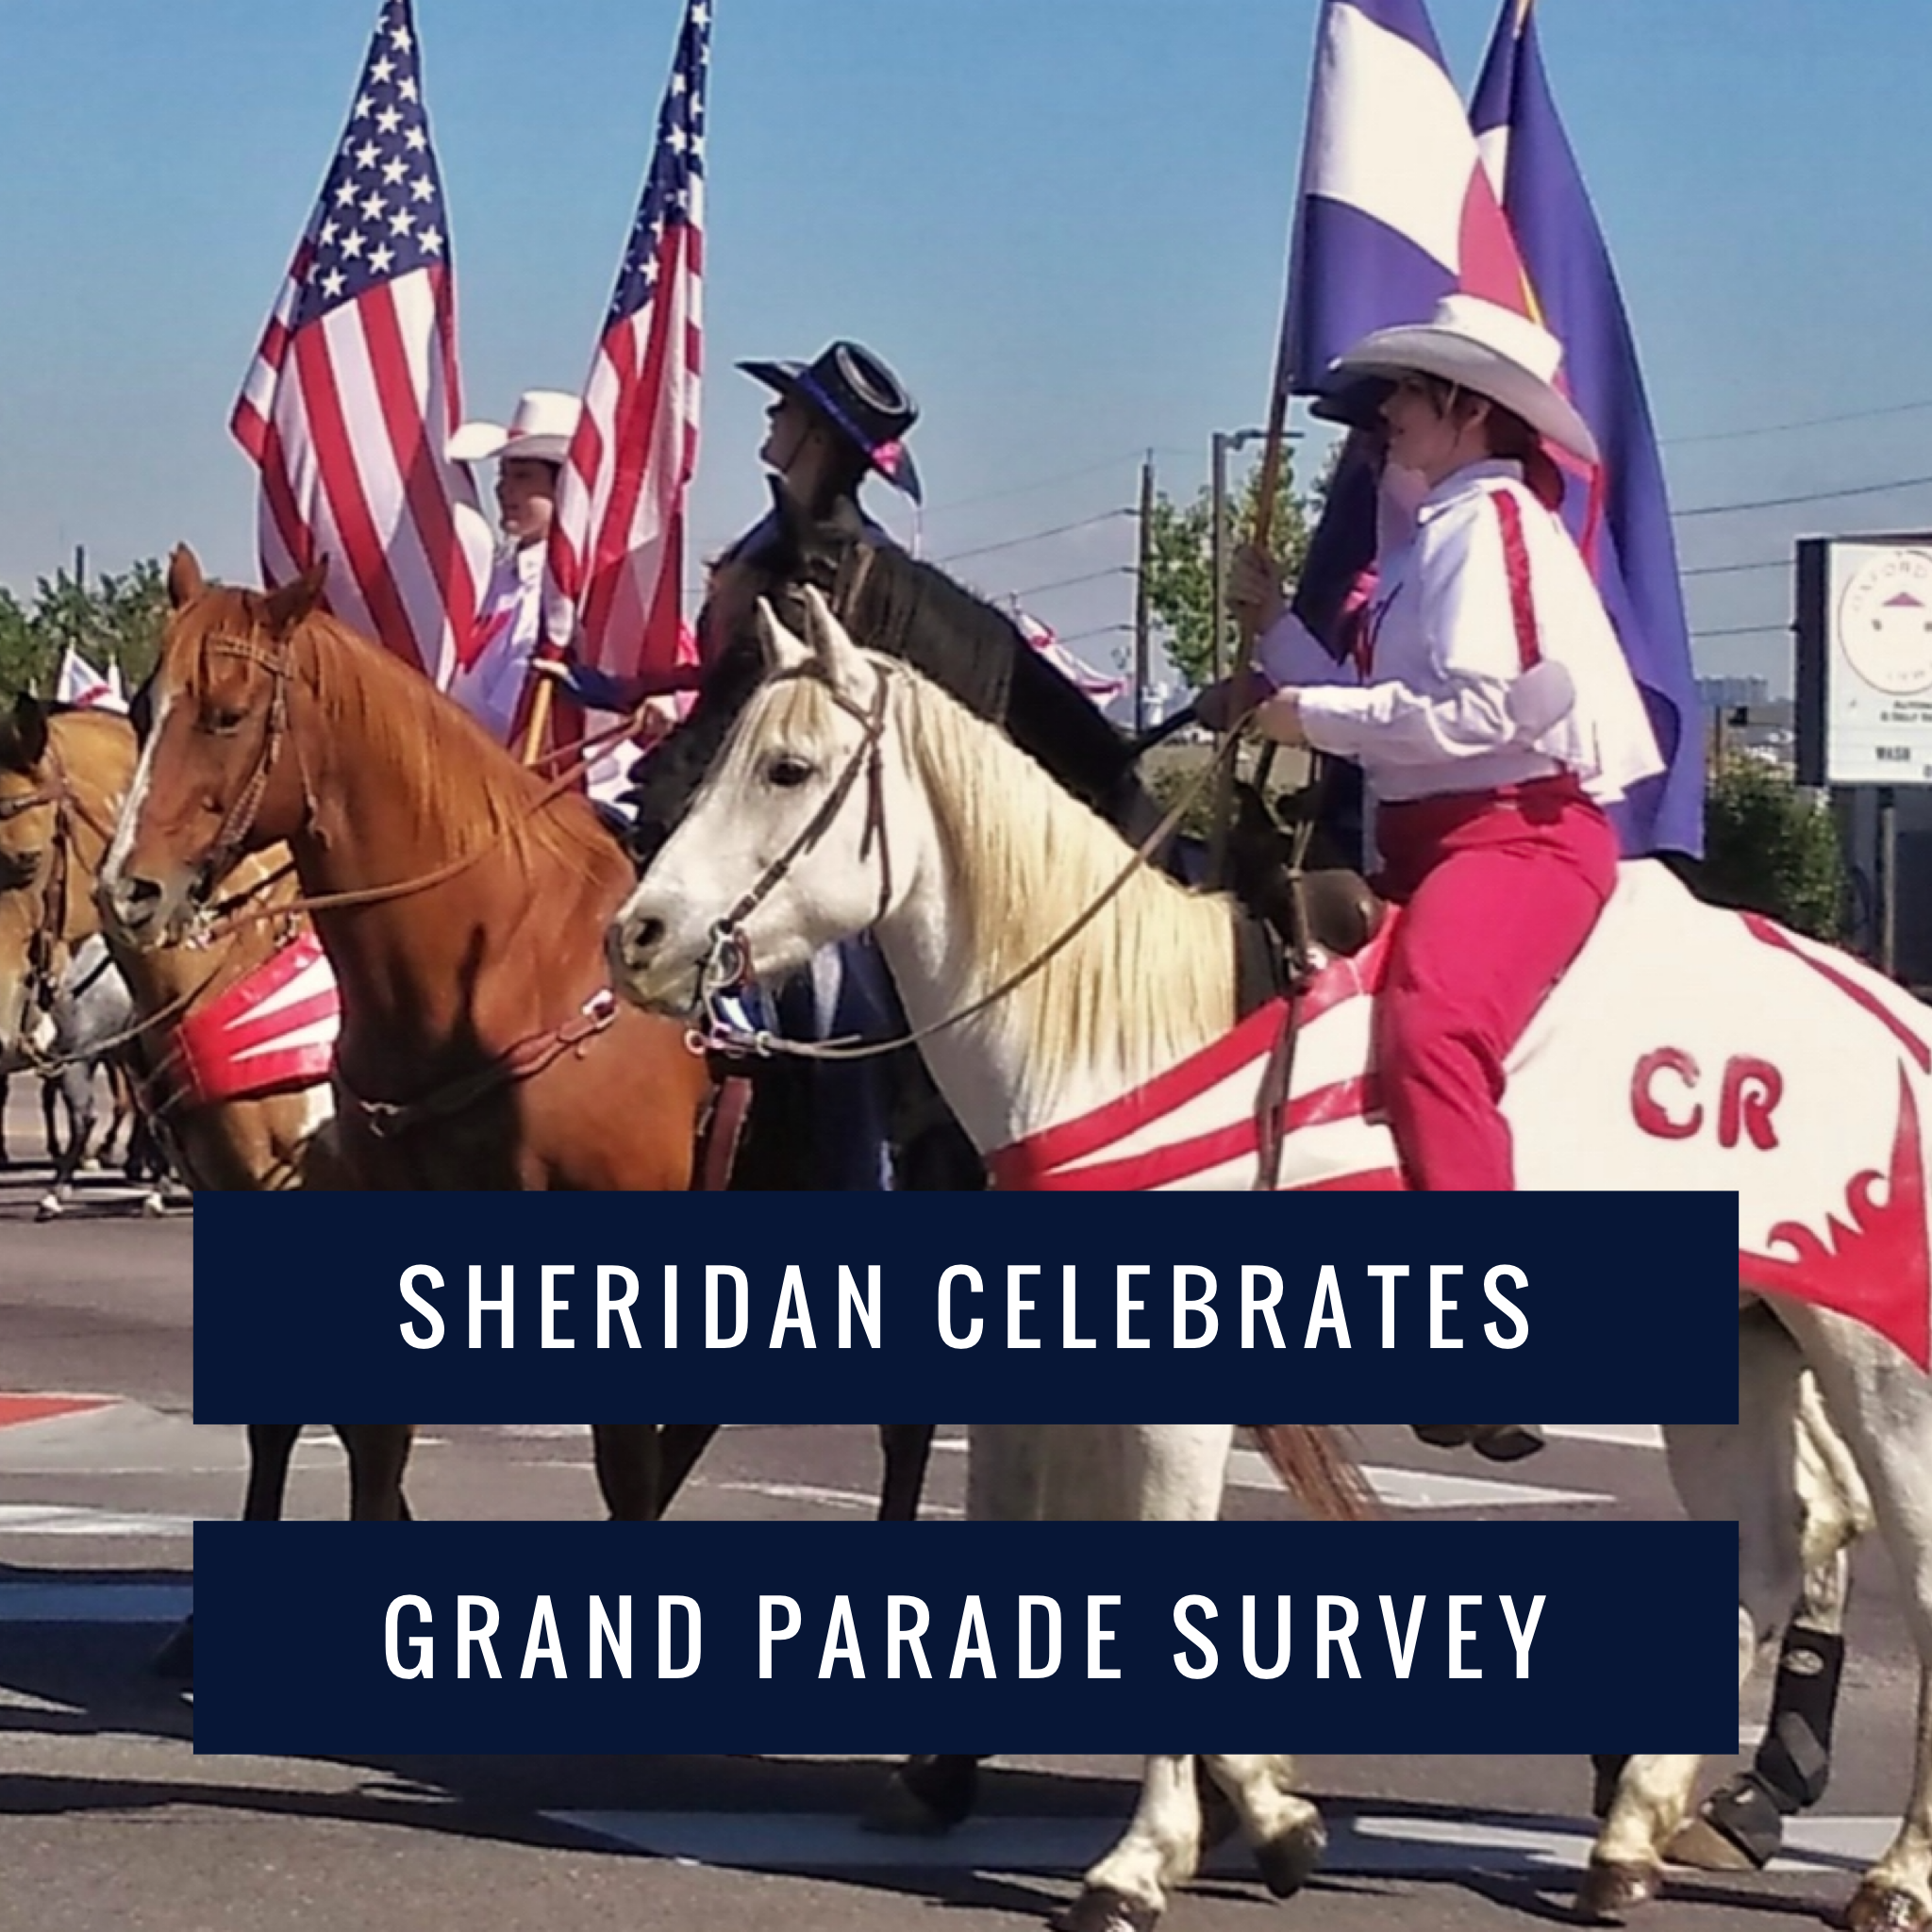 Westernaires at the Sheridan Celebrates Parade 2019.